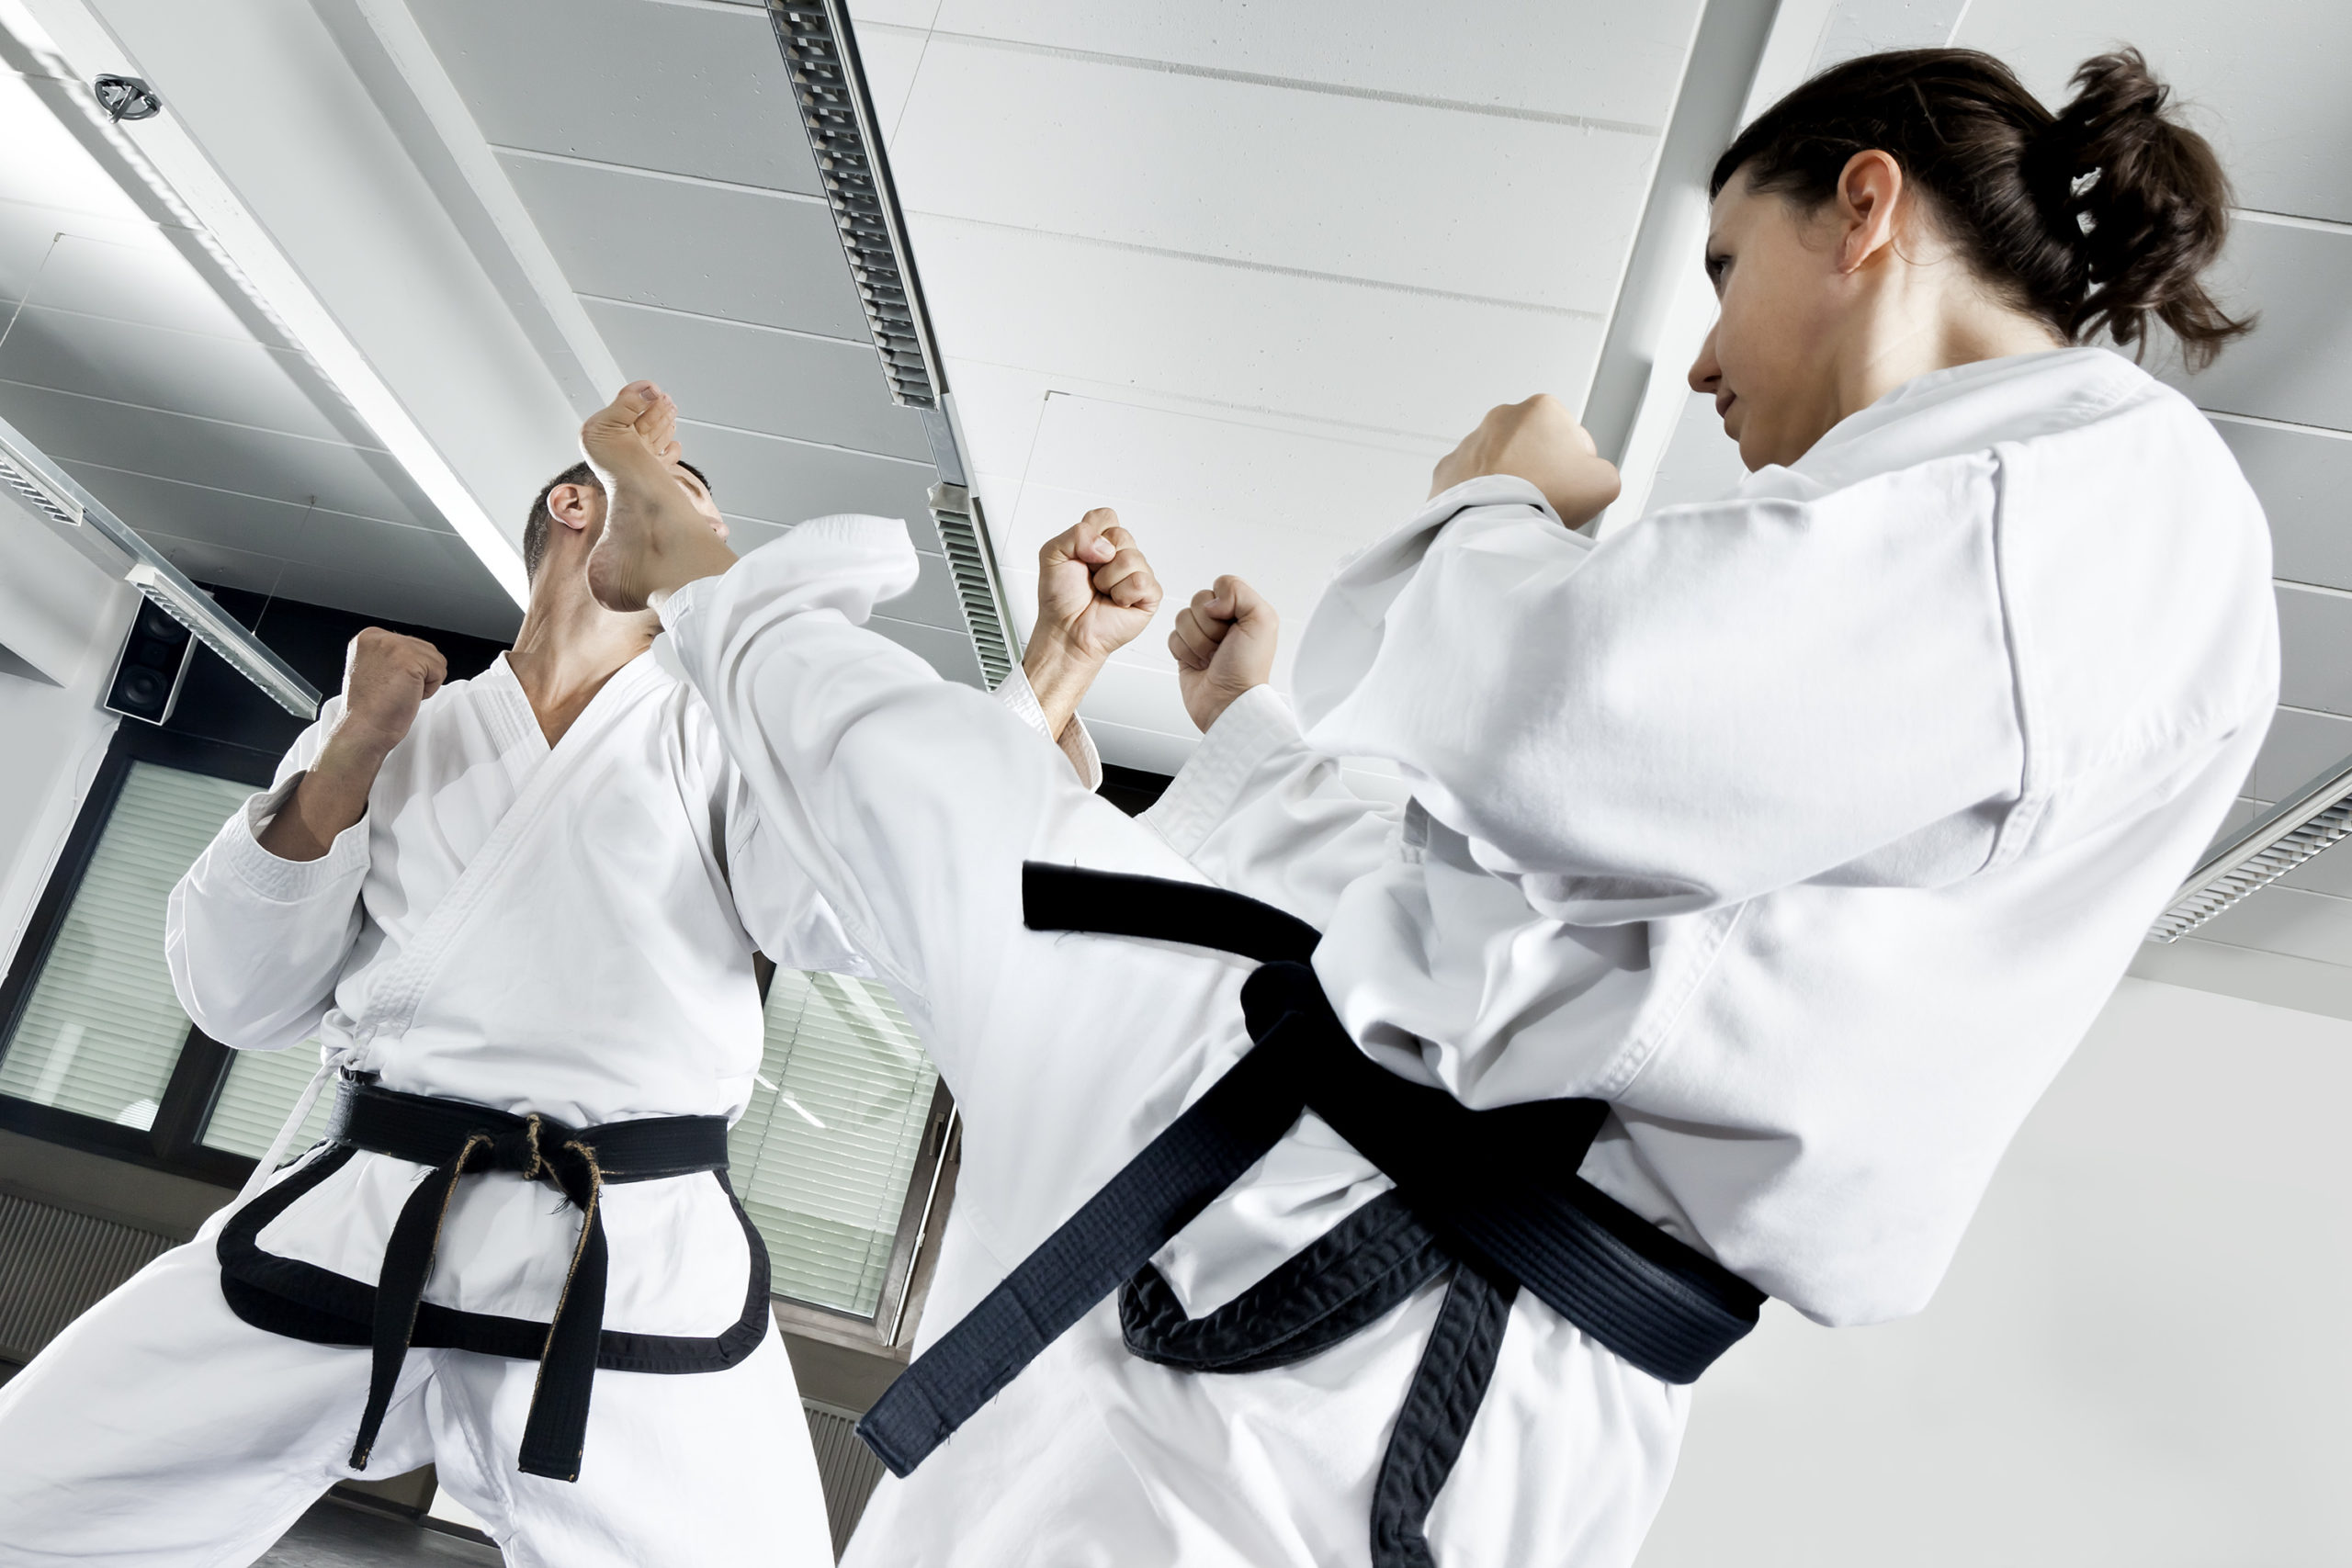 taekwondo is safer after lasik